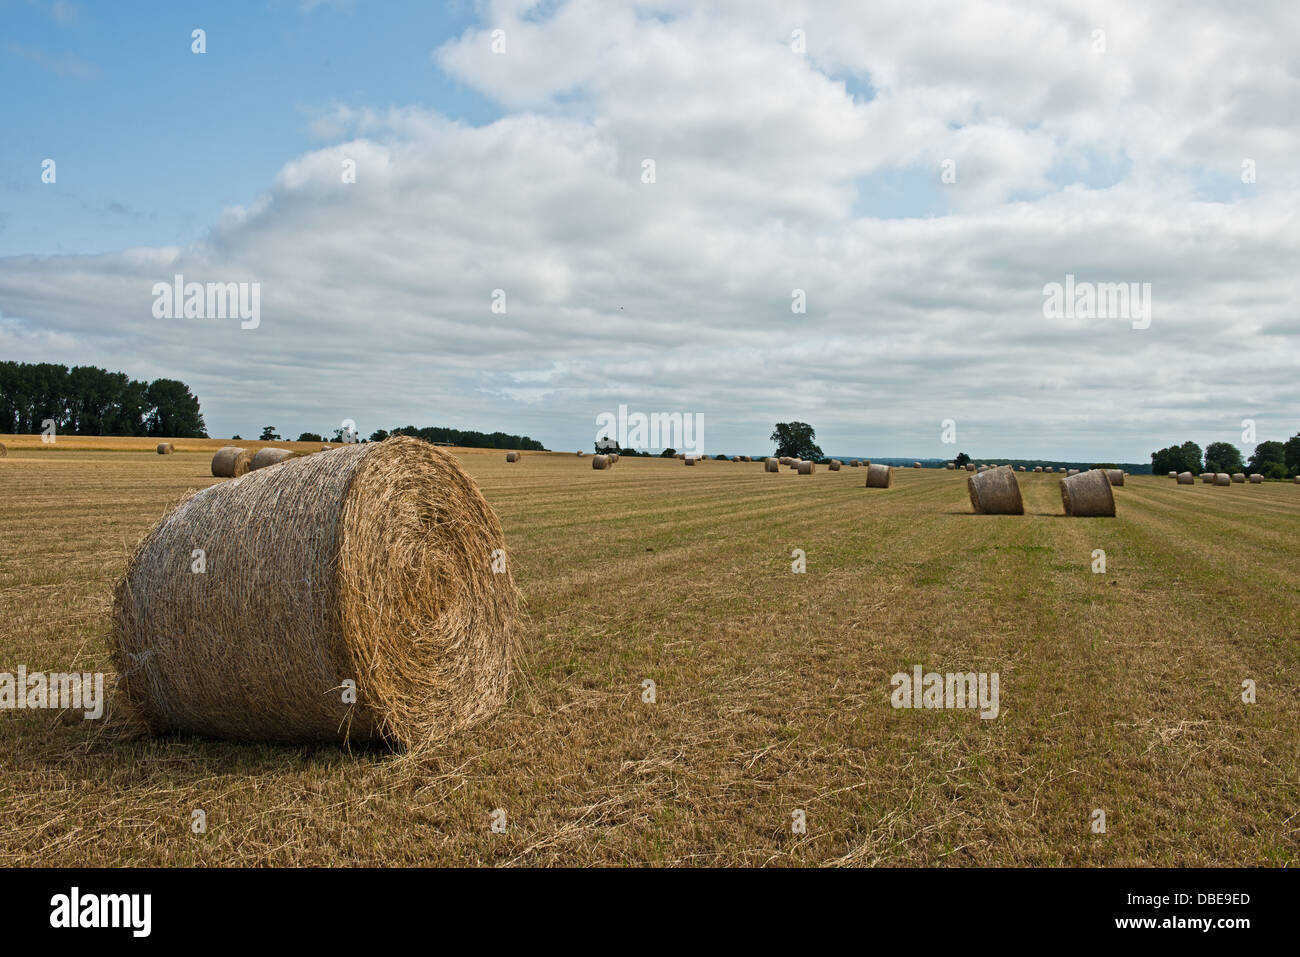 A Field Of Hay Bales On The A135, Thetford Road. Norfolk. England - Stock Image